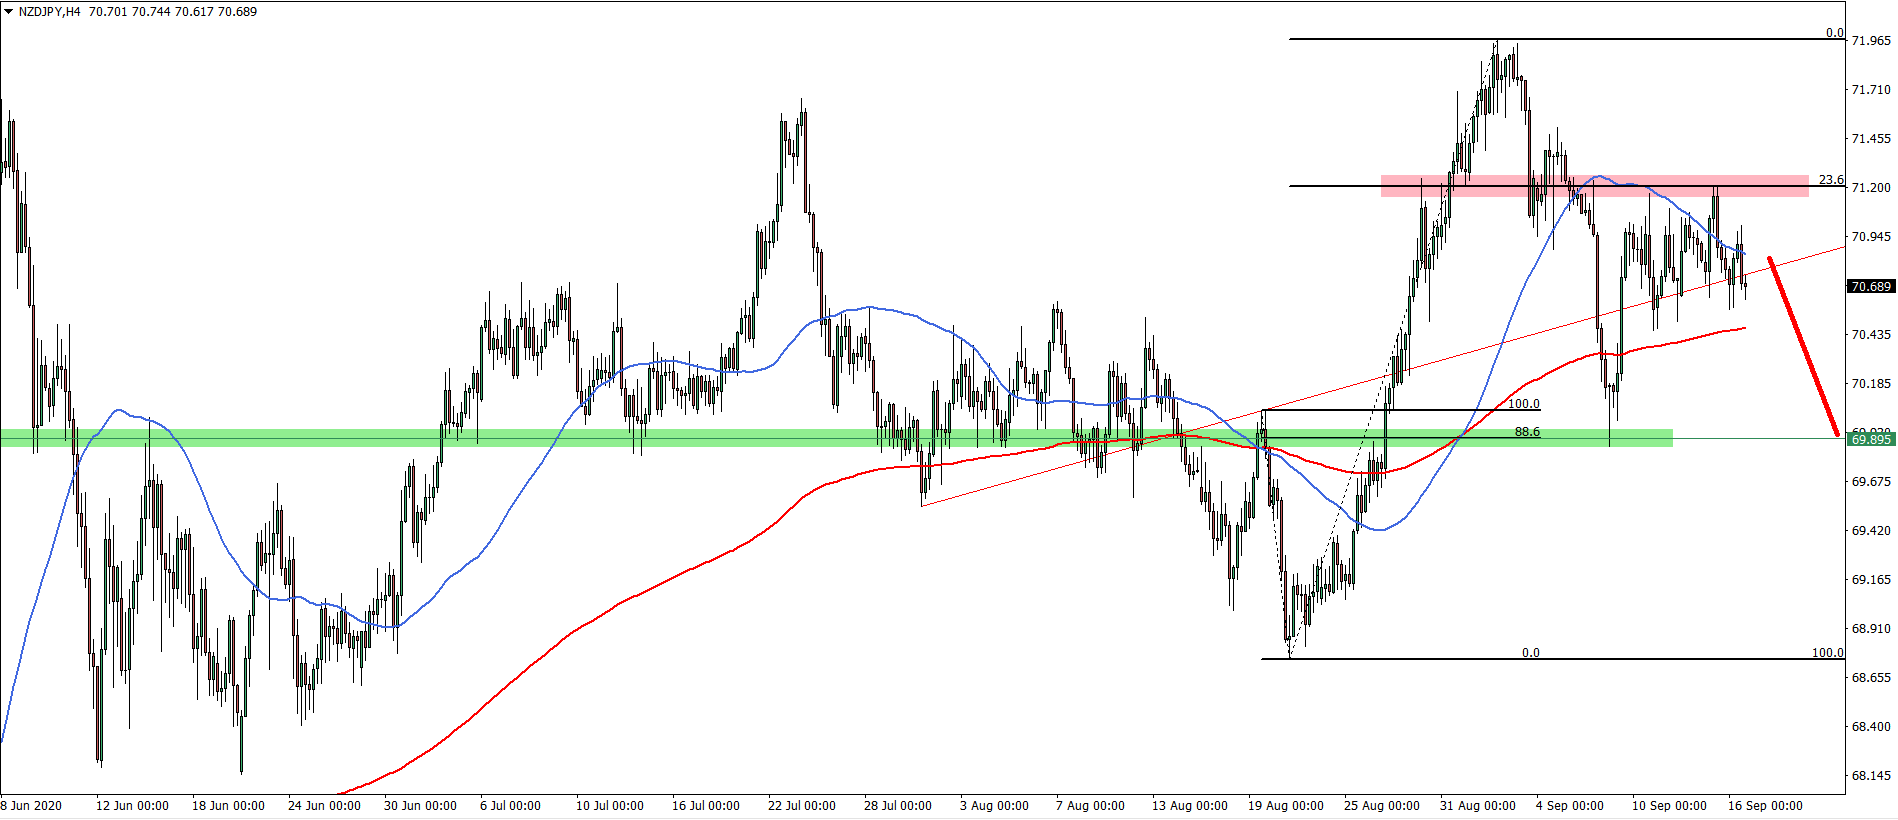 NZDJPY 4hour chart September 16th 2020